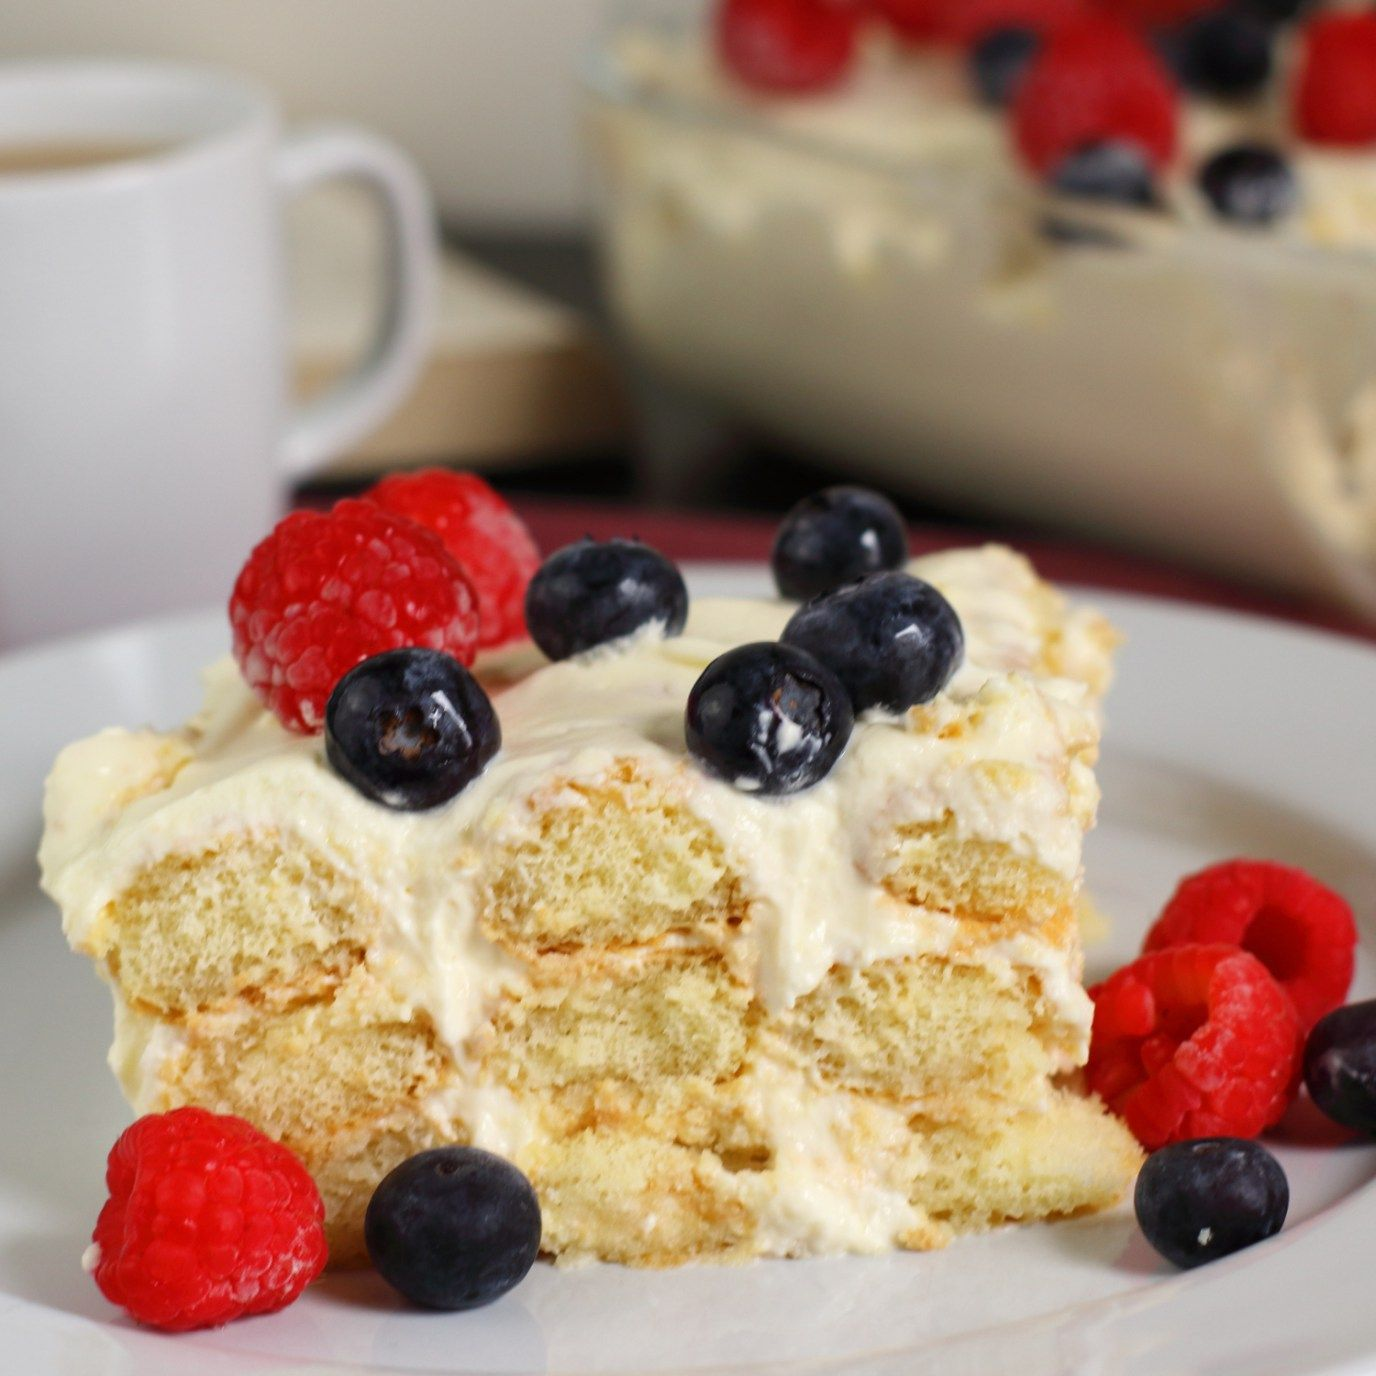 Limoncello Tiramisù with Blueberries and Raspberries - In two versions - Signorina Spaghetti